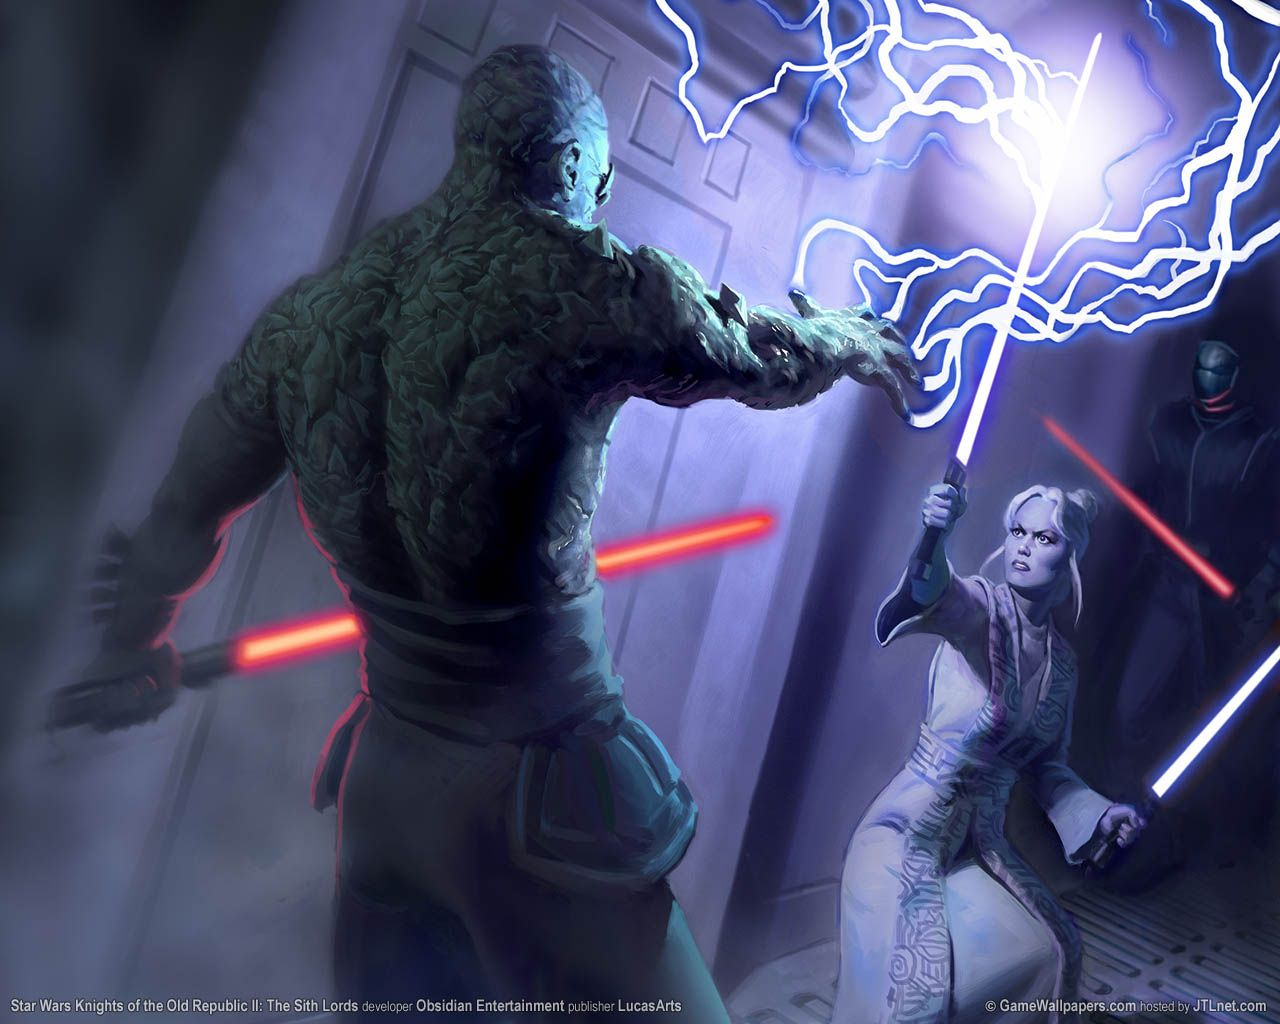 Darth Sion Vs Master Atris Star Wars Wallpaper Star Wars Images Star Wars Sith